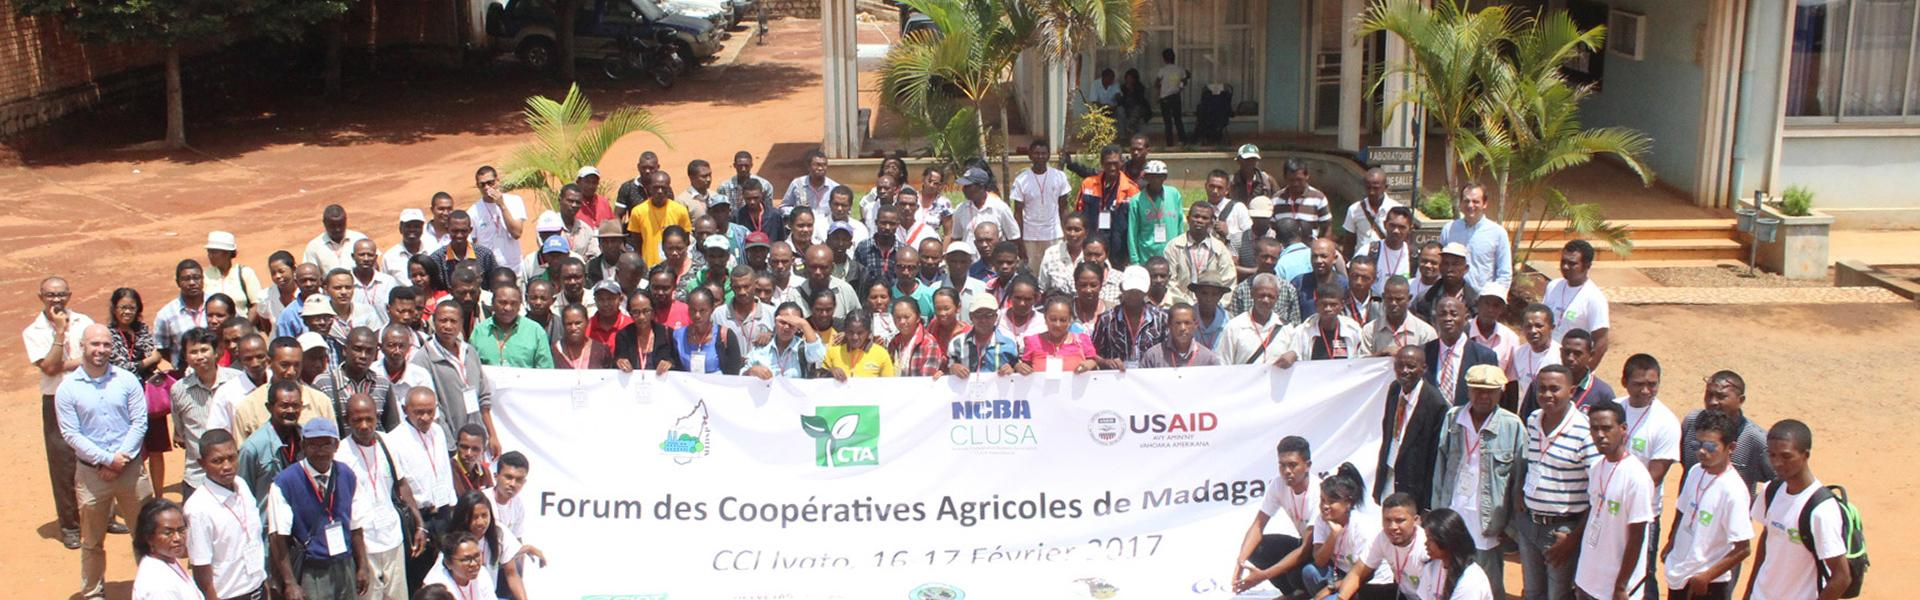 Cooperative Leadership Event in Madagascar: media outputs